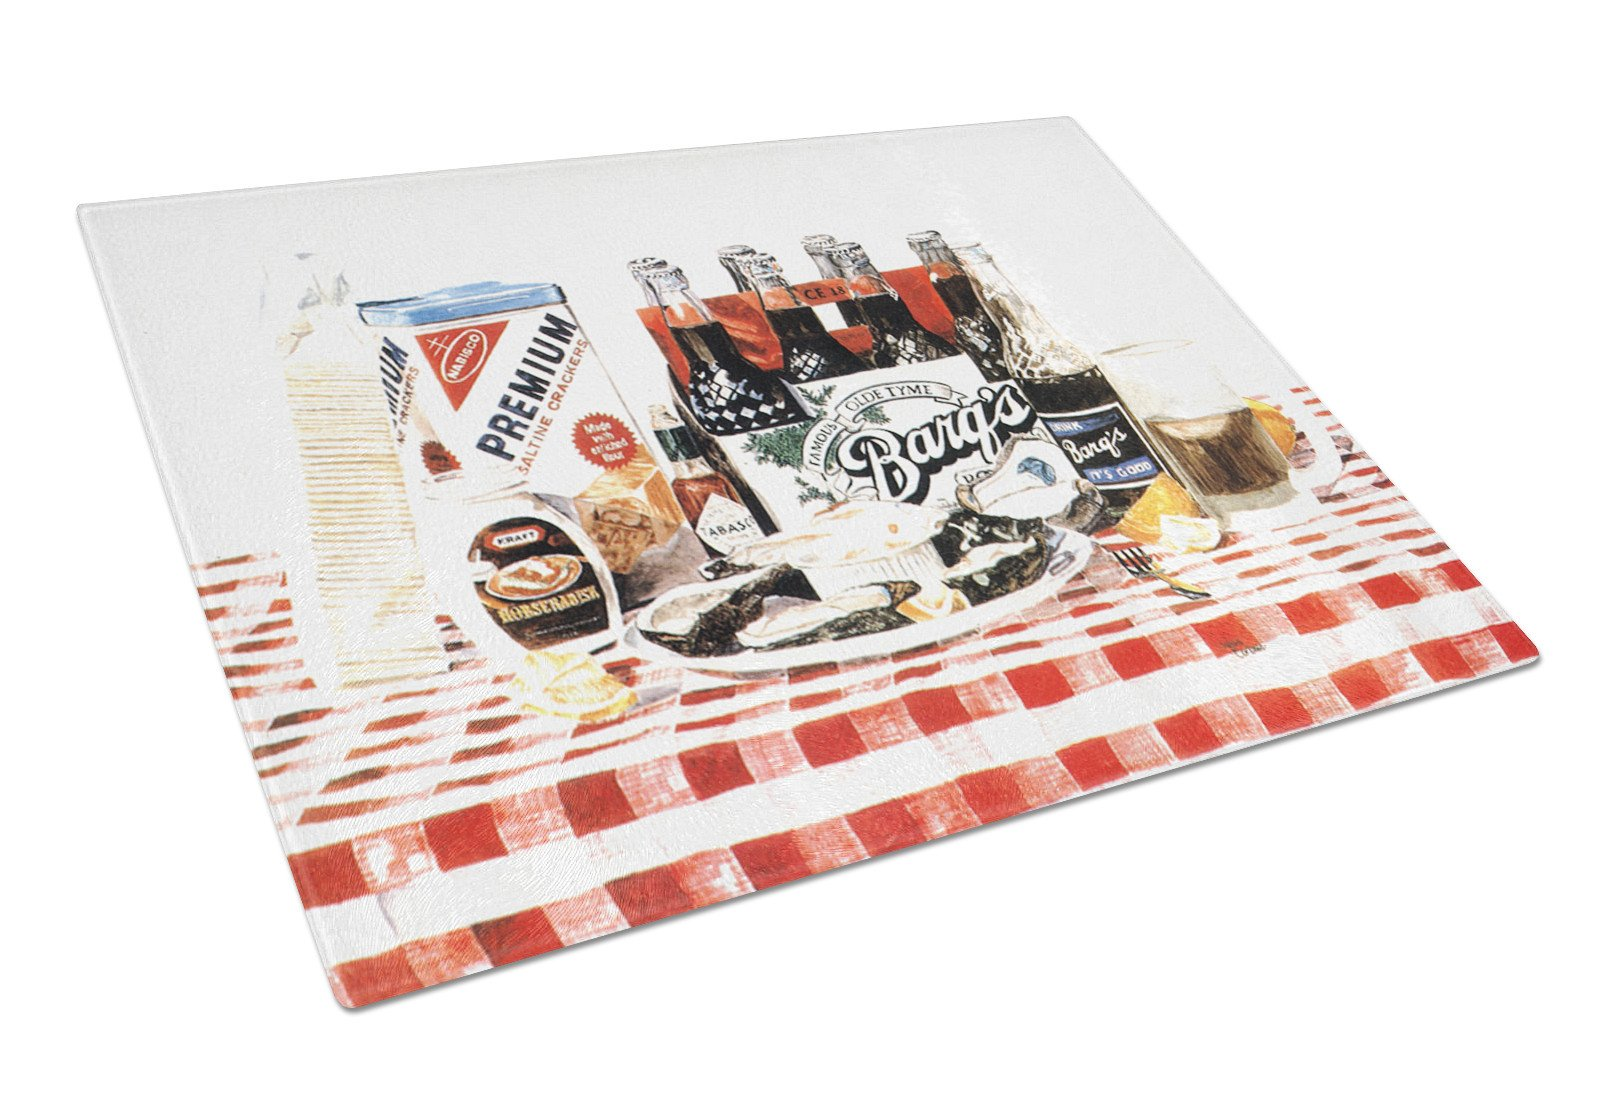 Barq's oysters Glass Cutting Board Large by Caroline's Treasures